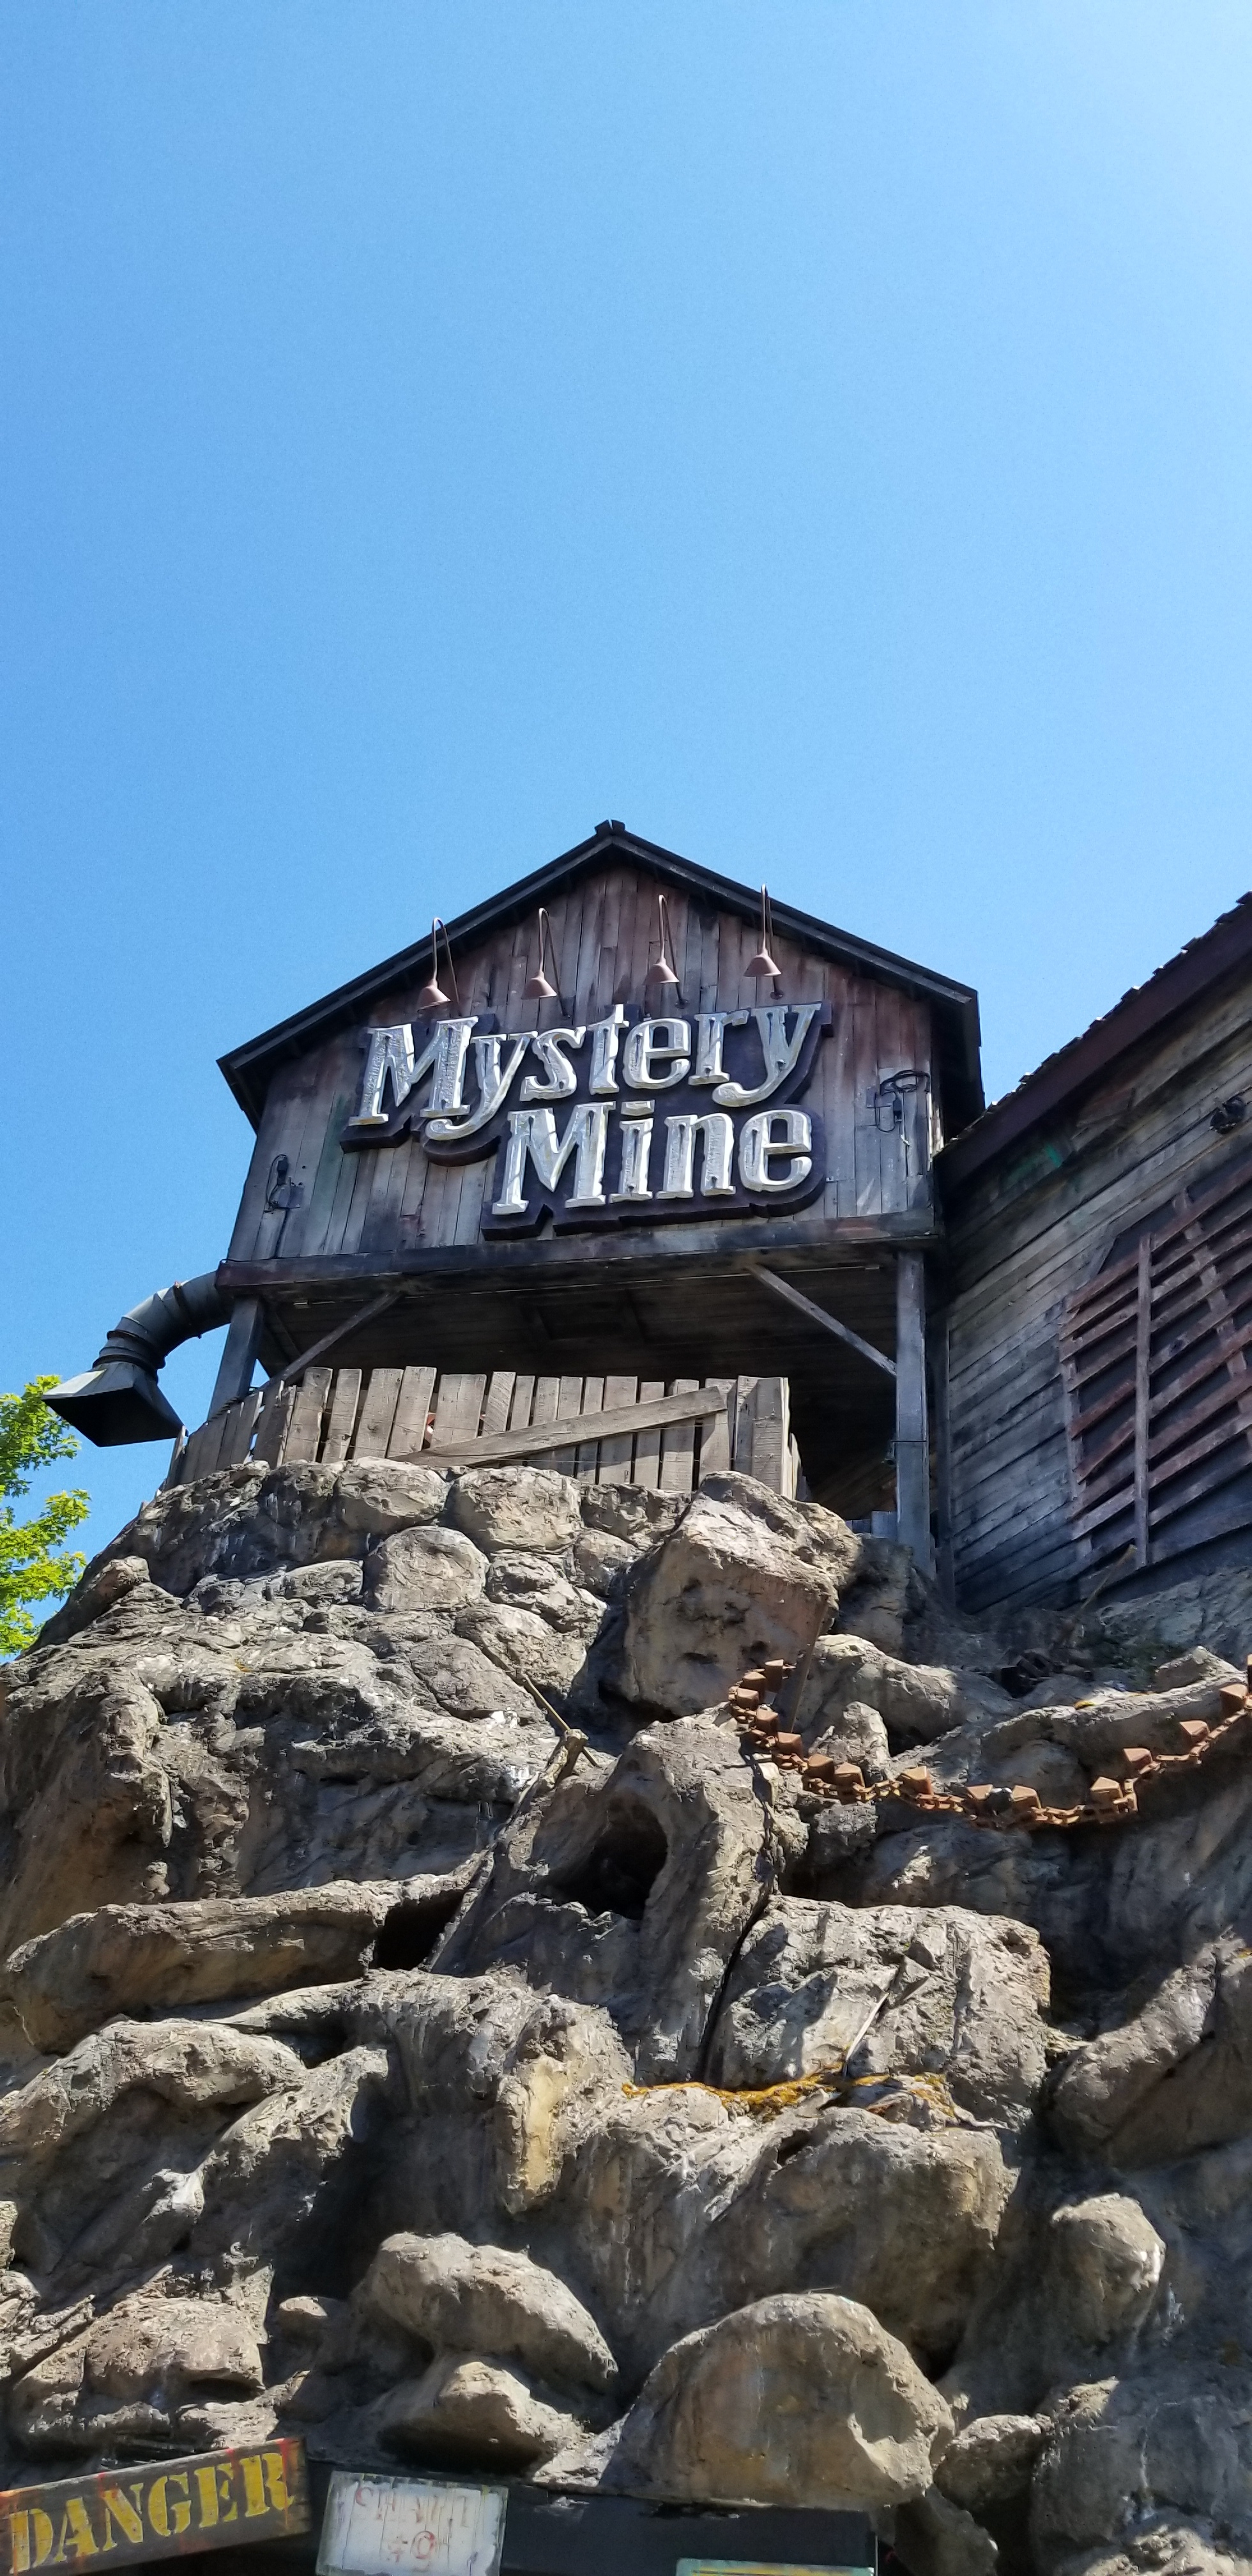 Mystery Mine is one of those rides that's hard to describe, but with longer park hours, take a ride on it night for a truly unique experience.